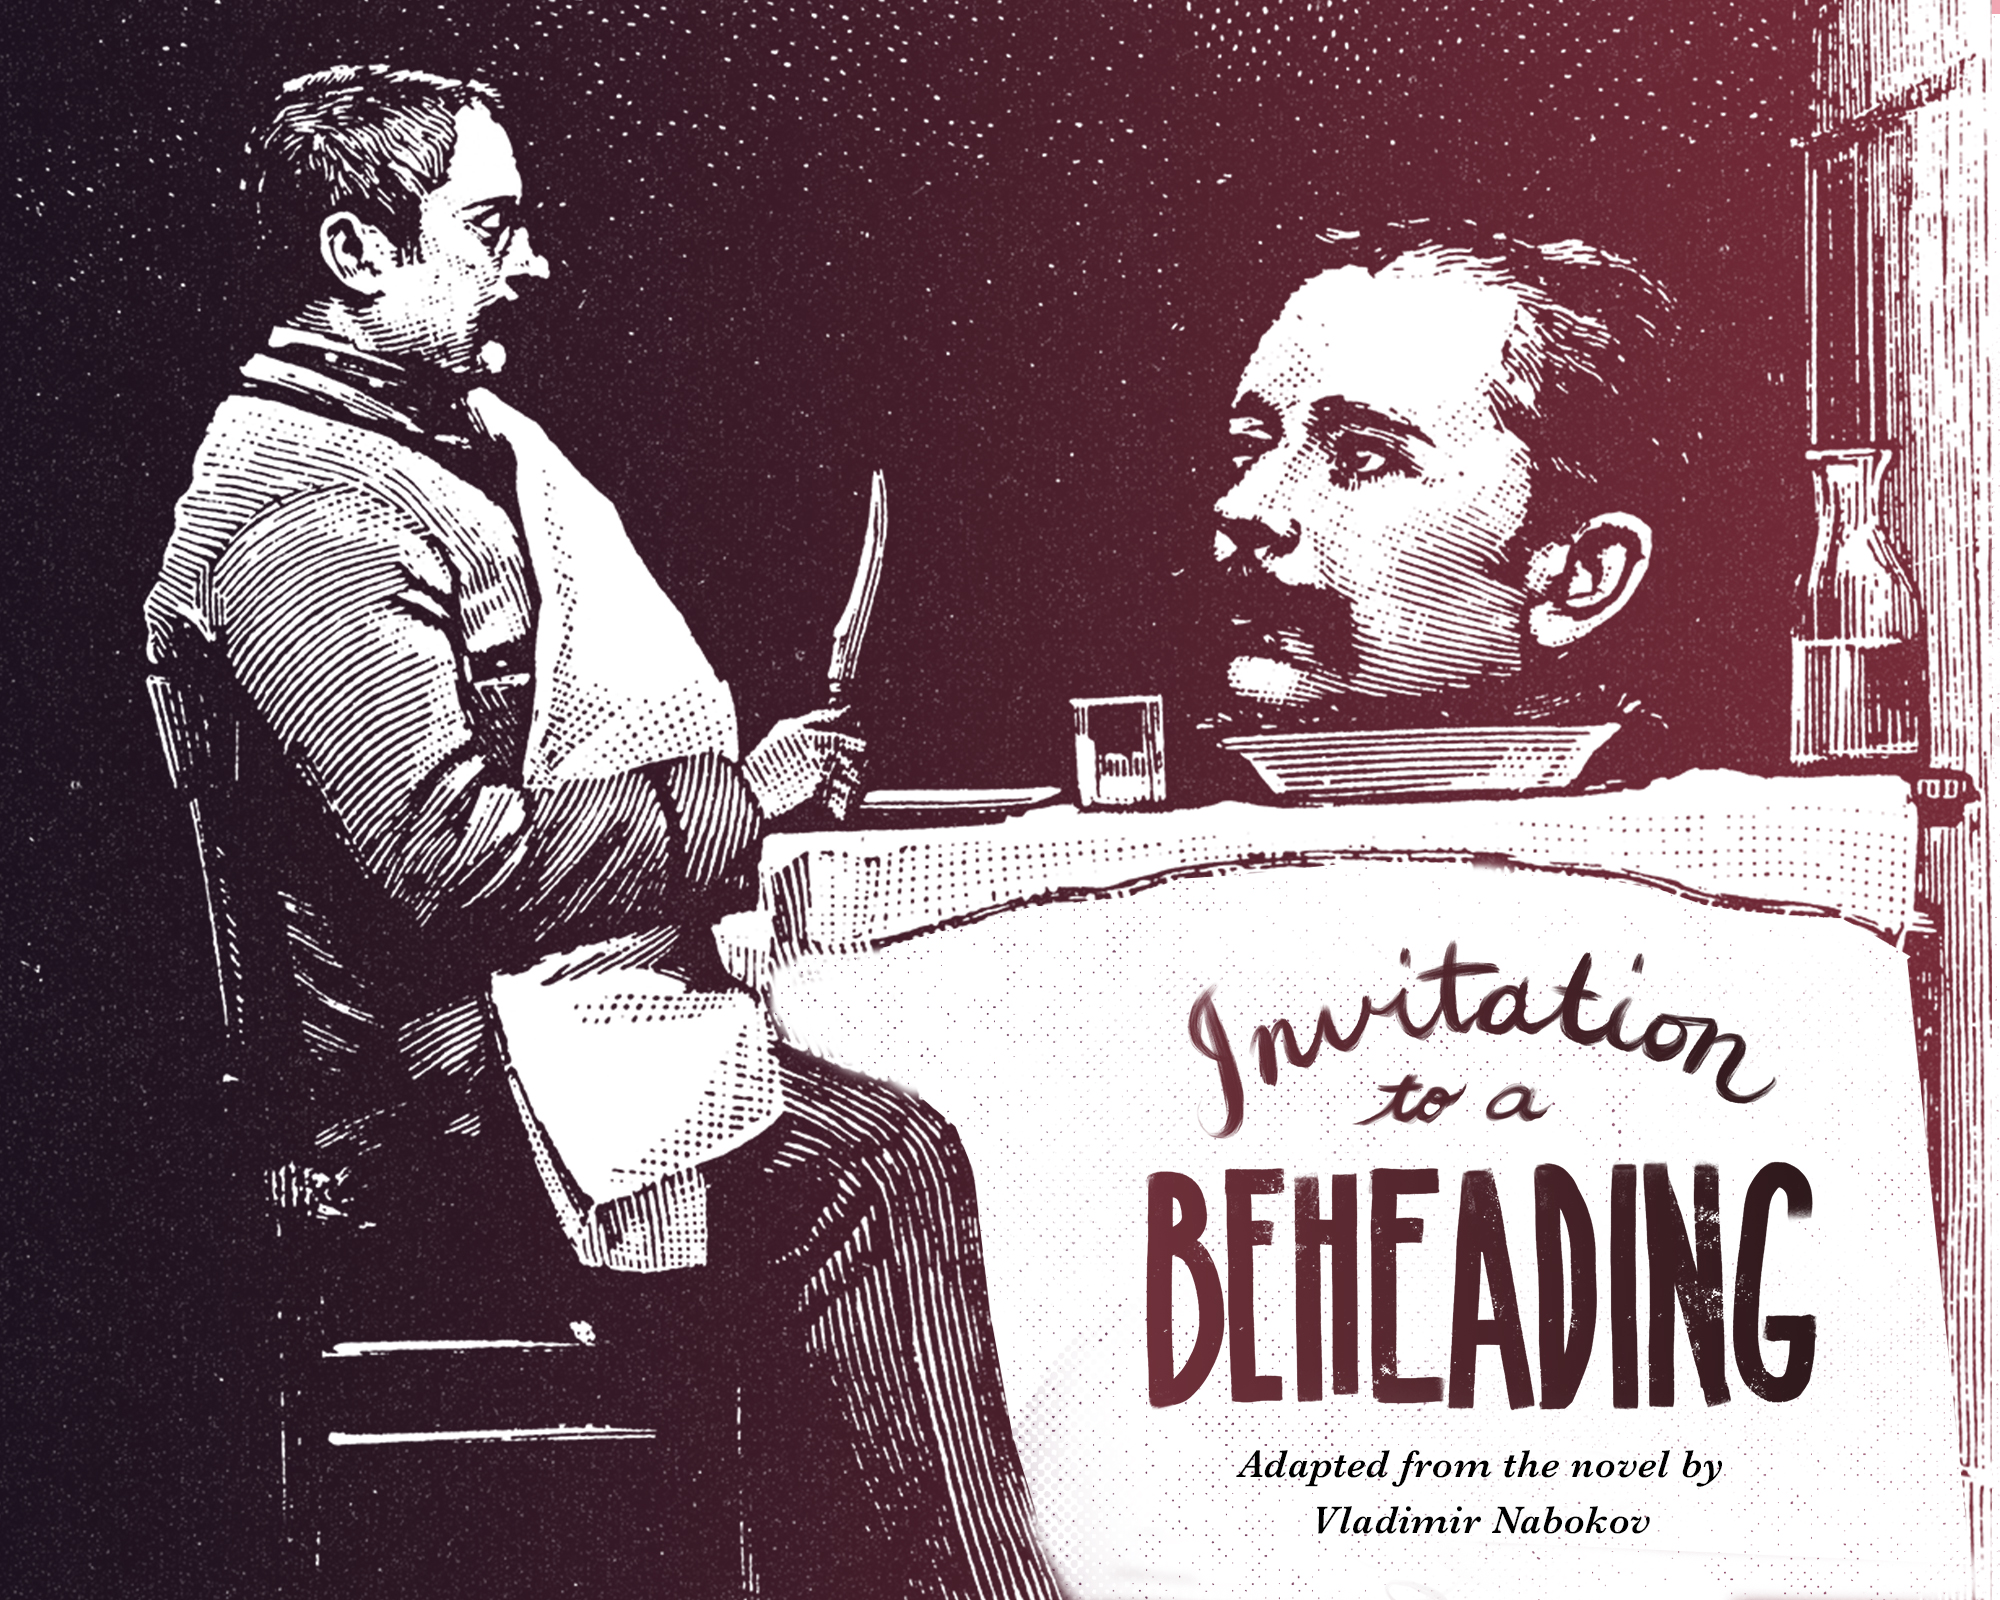 Invitation to a beheading - Direct from Chicago!Created by Sweven Theatre and Rough HouseIn a bizarre and irrational world, a man is condemned to death for an absurd crime, and sent to a surreal prison to await his execution. But the prison may not be what it seems...Alternately disorienting, absurd, hysterical, and hopeful, this great novel by one of the 20th century's masters is brought to the stage in a co-production by Rough House and Sweven Theatre. With their signature combination of playfulness and strangeness, full of surprising twists and turns, and told through a combination of puppetry, masks, and imaginative storytelling.